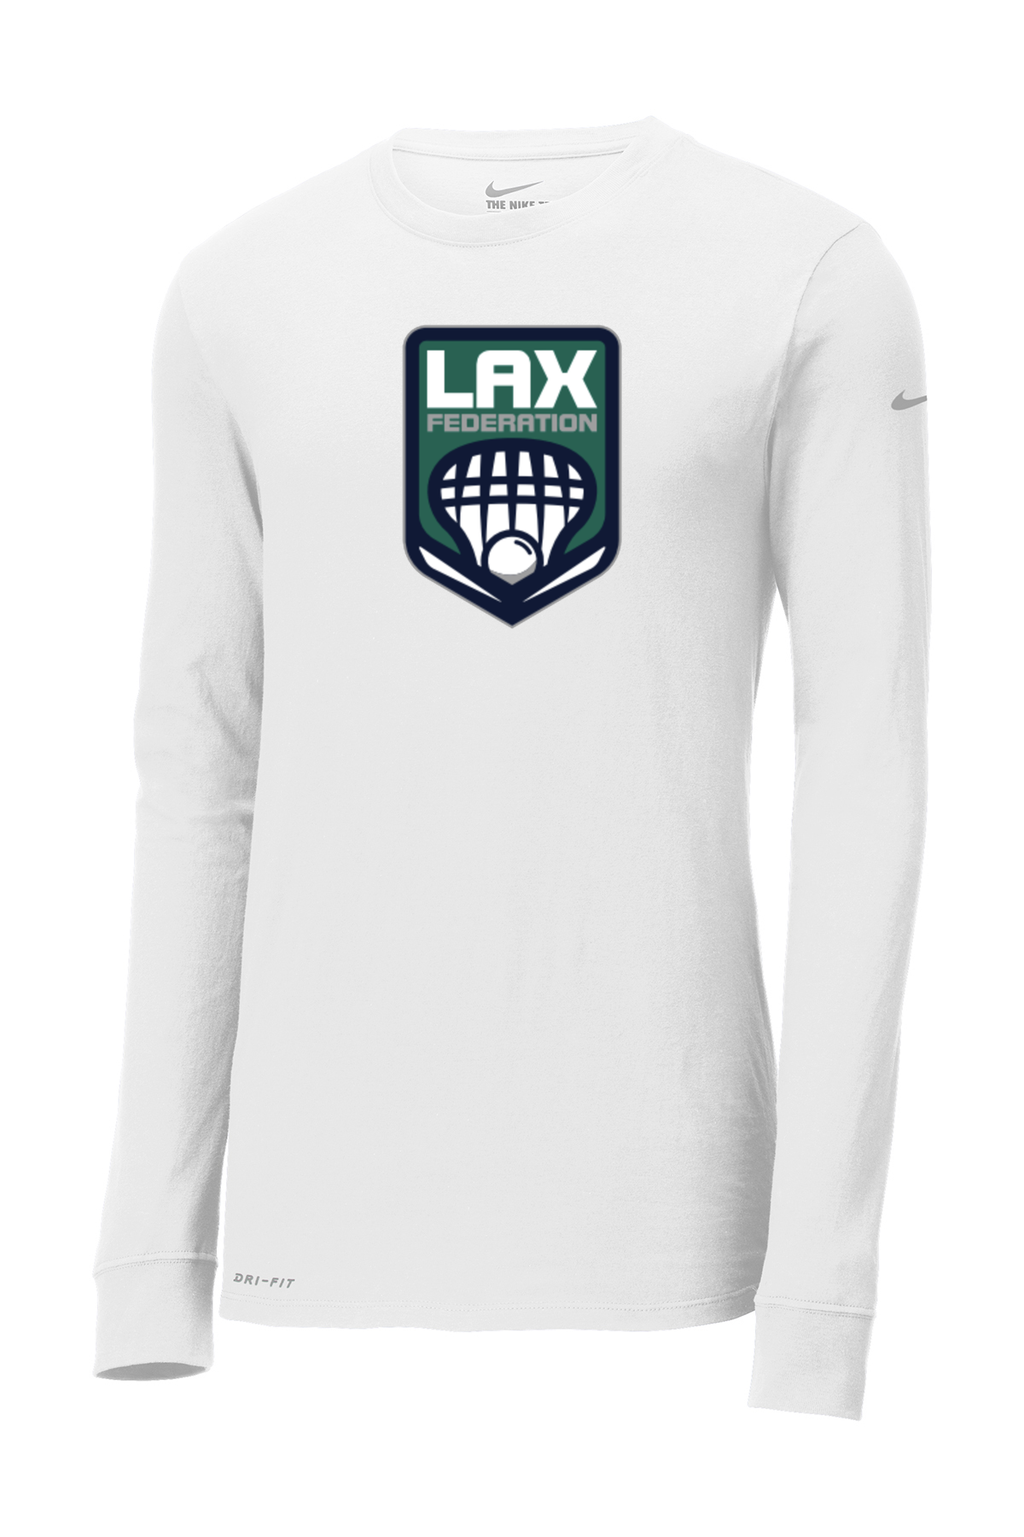 LAX FED Nike Dri-FIT Long Sleeve Tee